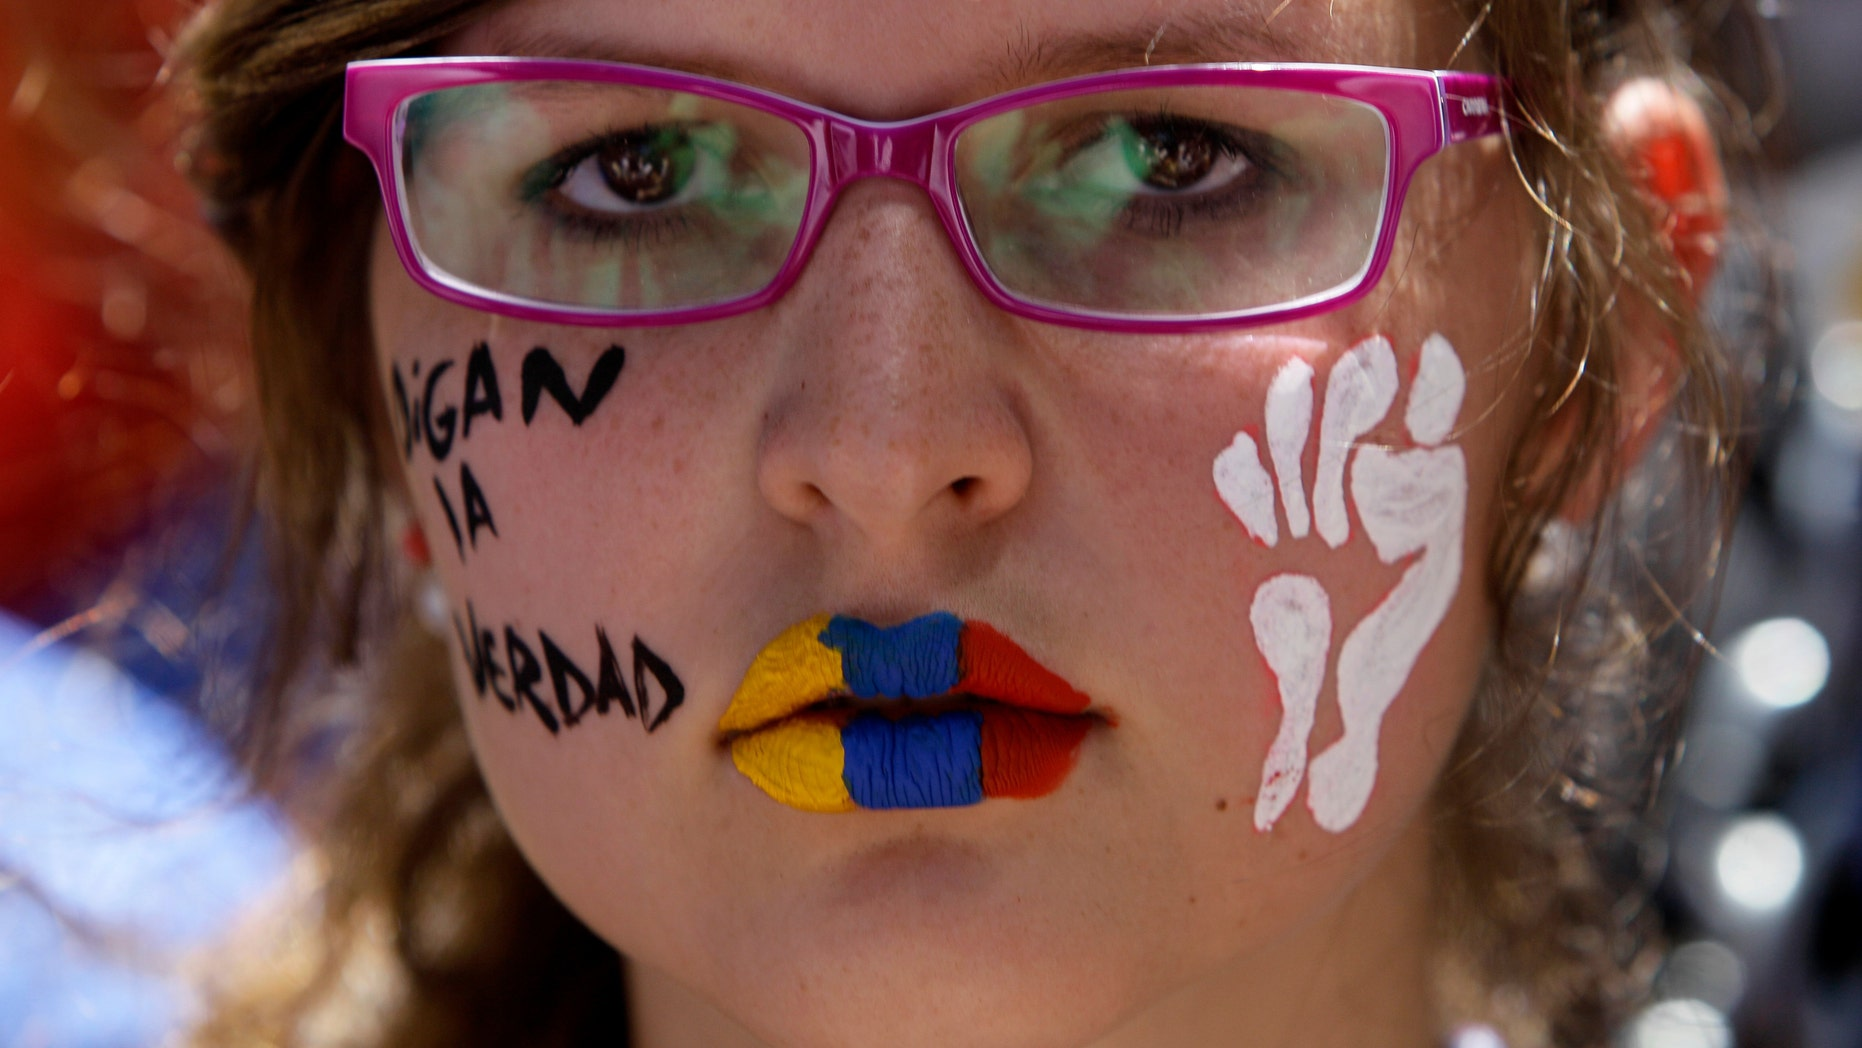 A demonstrator with her lips painted with the colors of the Venezuelan flag attends a protest in Caracas, Venezuela, Sunday, March 3, 2013. Hundreds of protesters took to the streets of Venezuela's capital on Sunday, demanding the government provide complete details about the health of ailing Venezuela's President Hugo Chavez. (AP Photo/Fernando Llano)